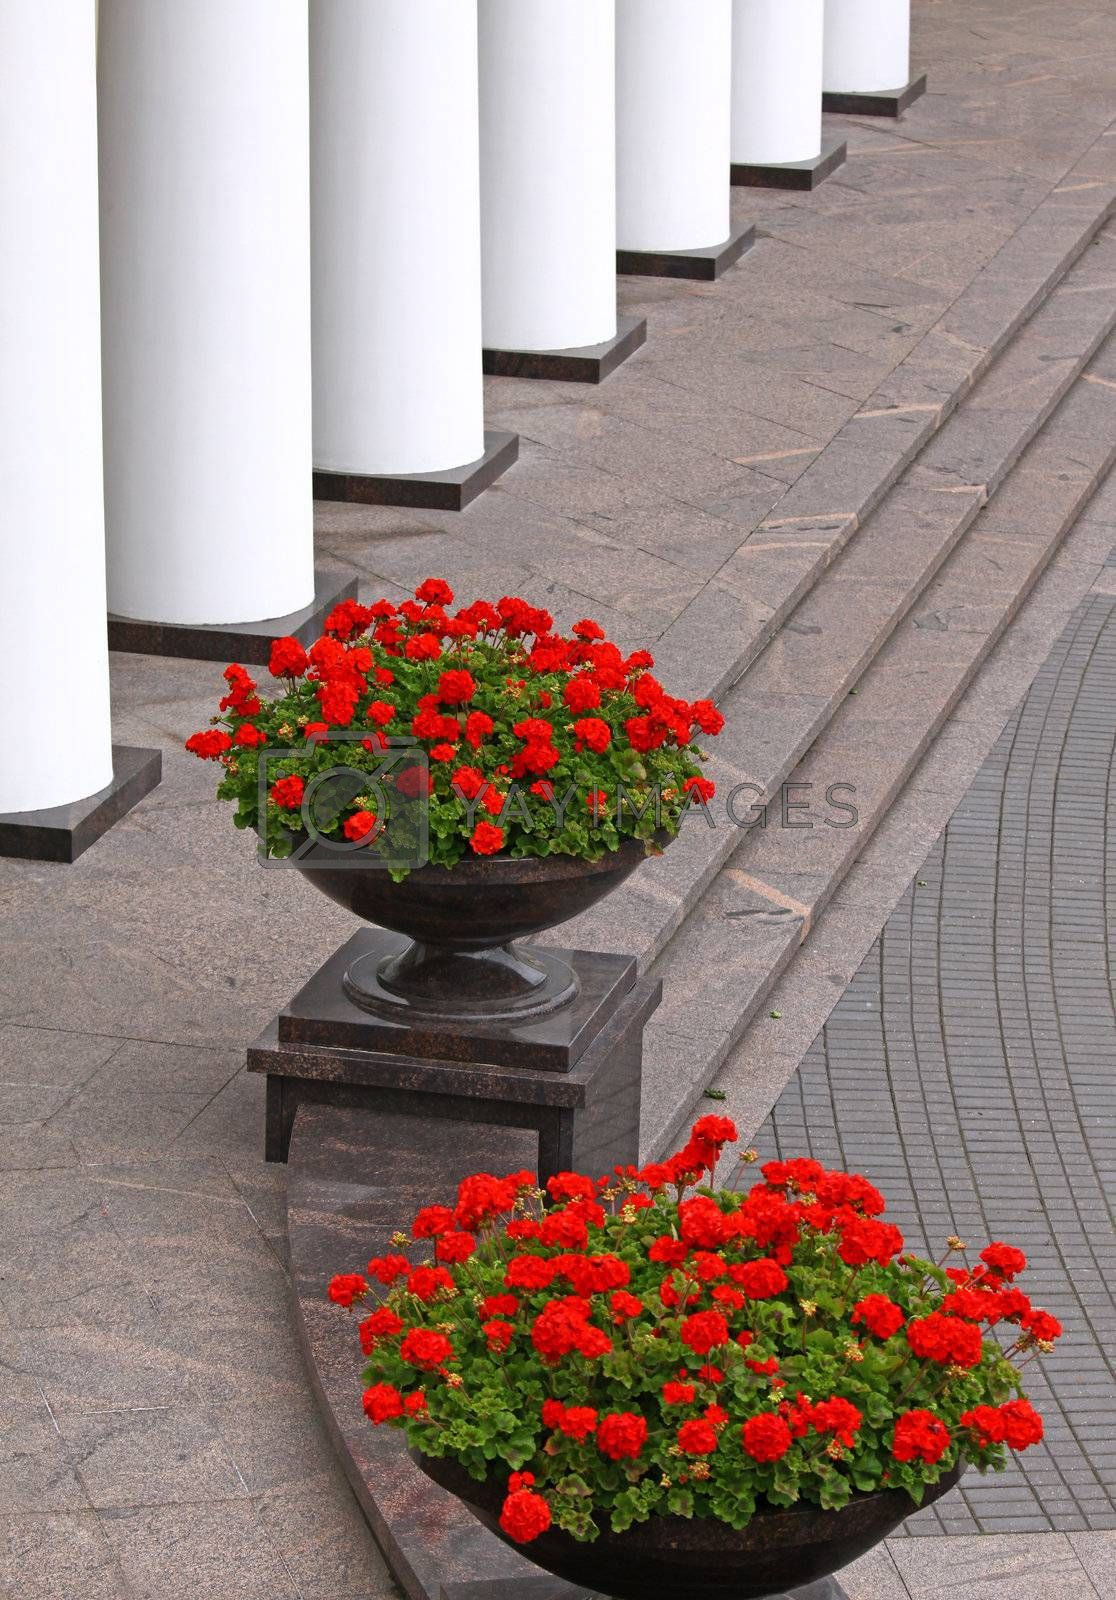 Two big flower pots with red flowers and white colonnade seen as nice exterior details